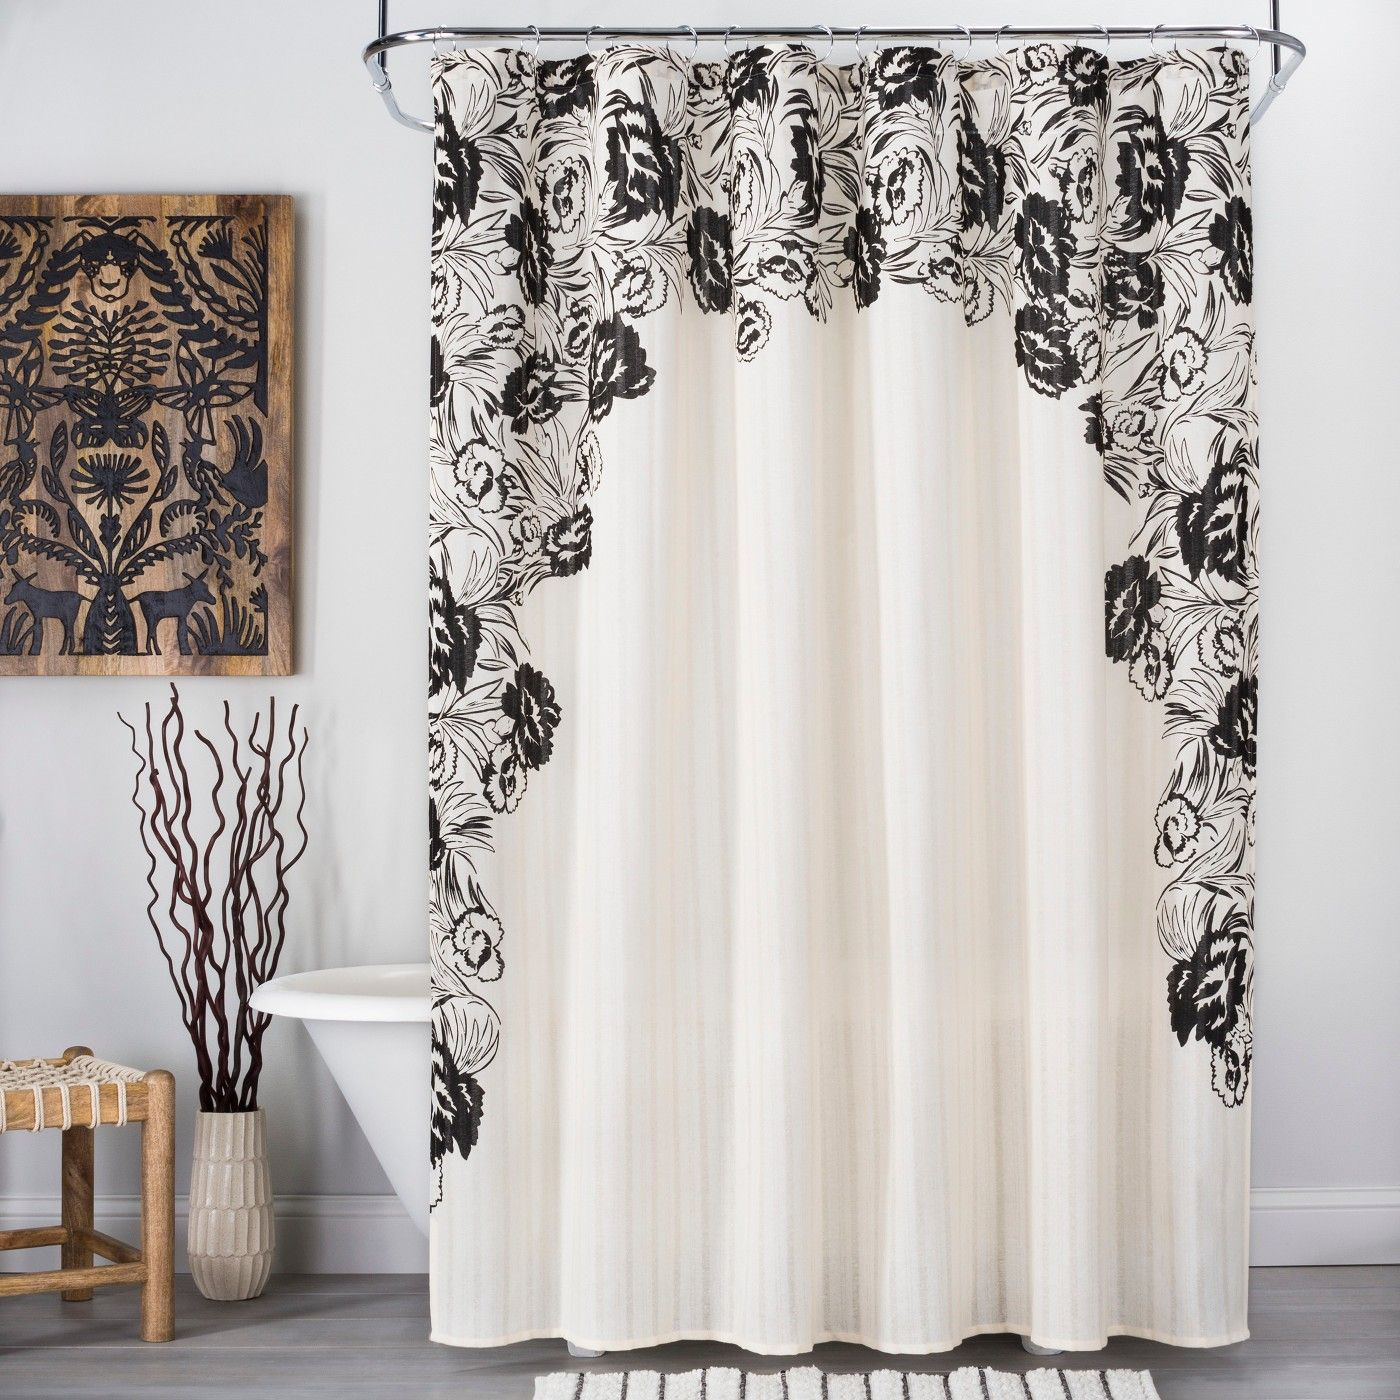 Floral Print Edged Shower Curtain Whiteblack  Opalhouse  Image